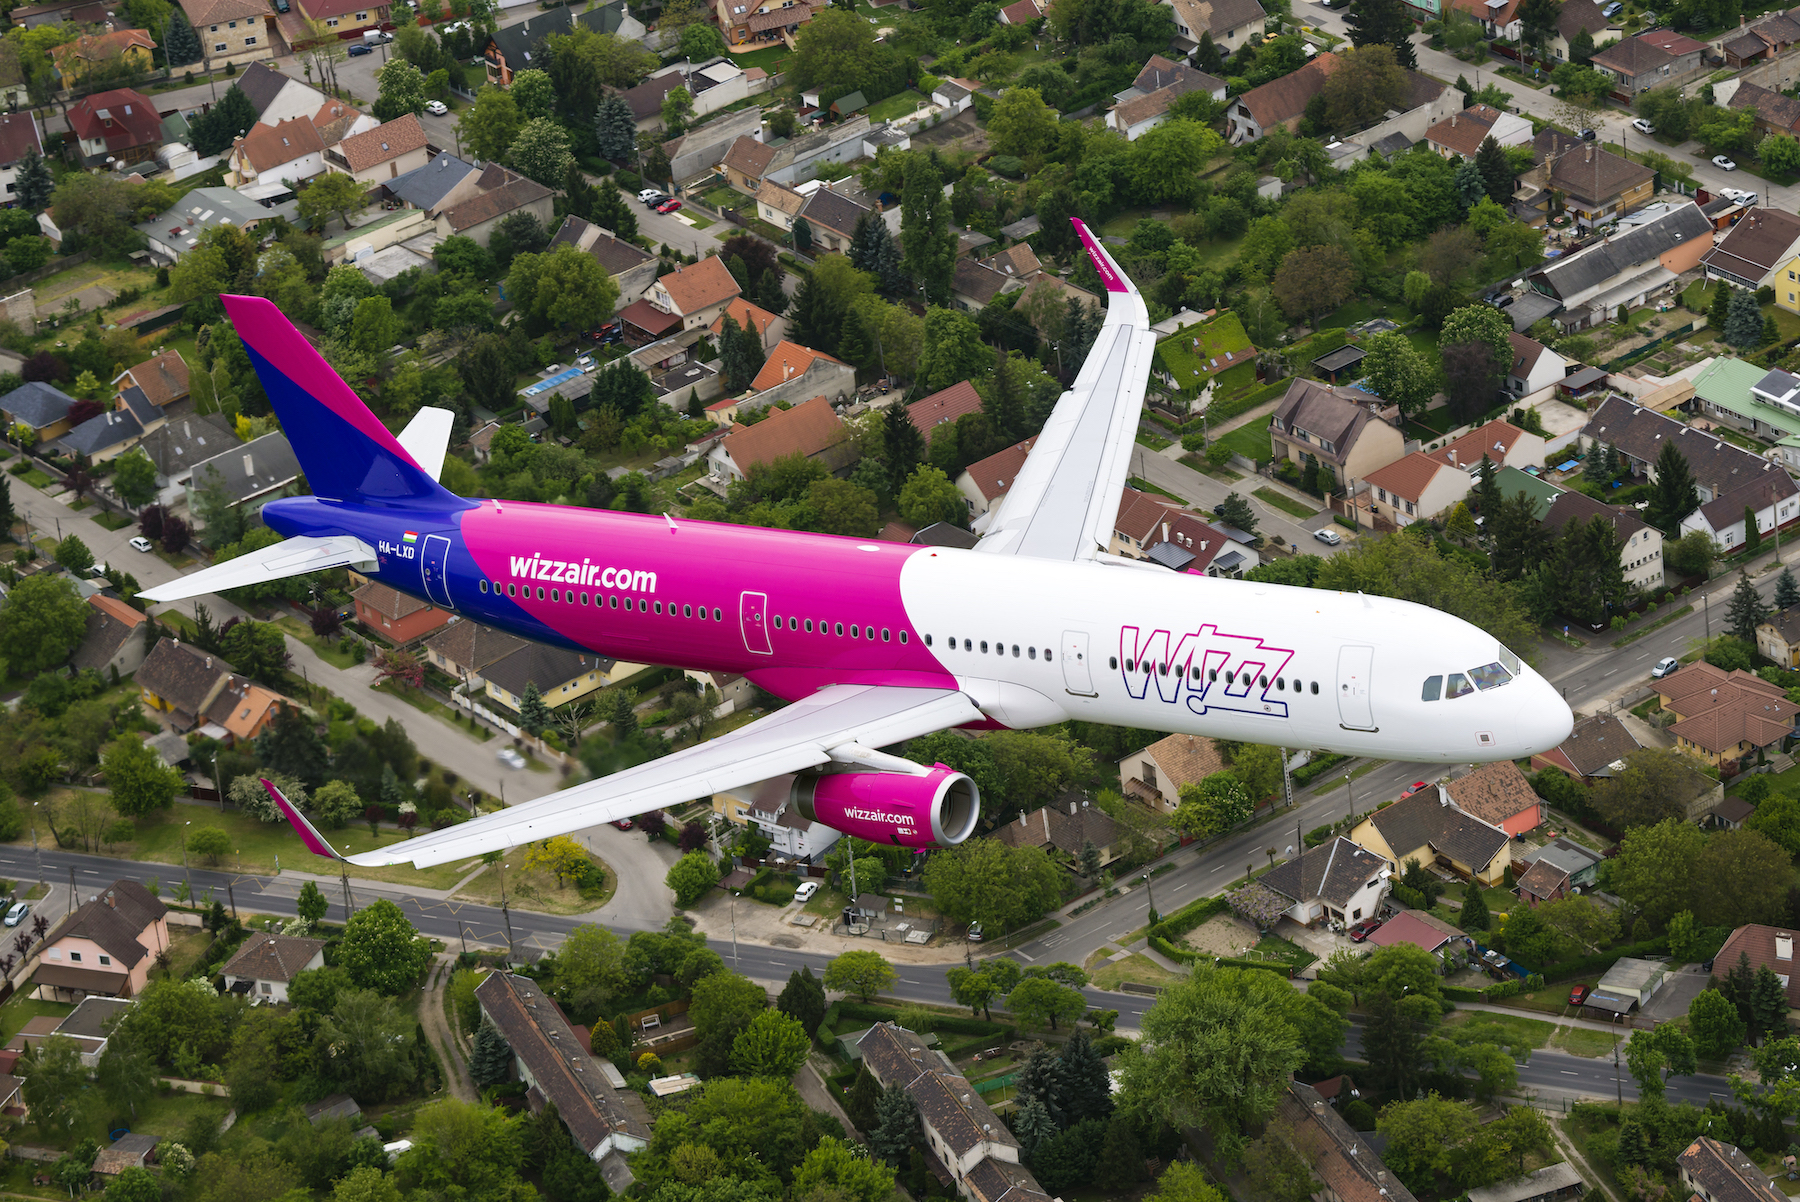 Wizz Air Abu Dhabi announces three new routes to Europe and ME